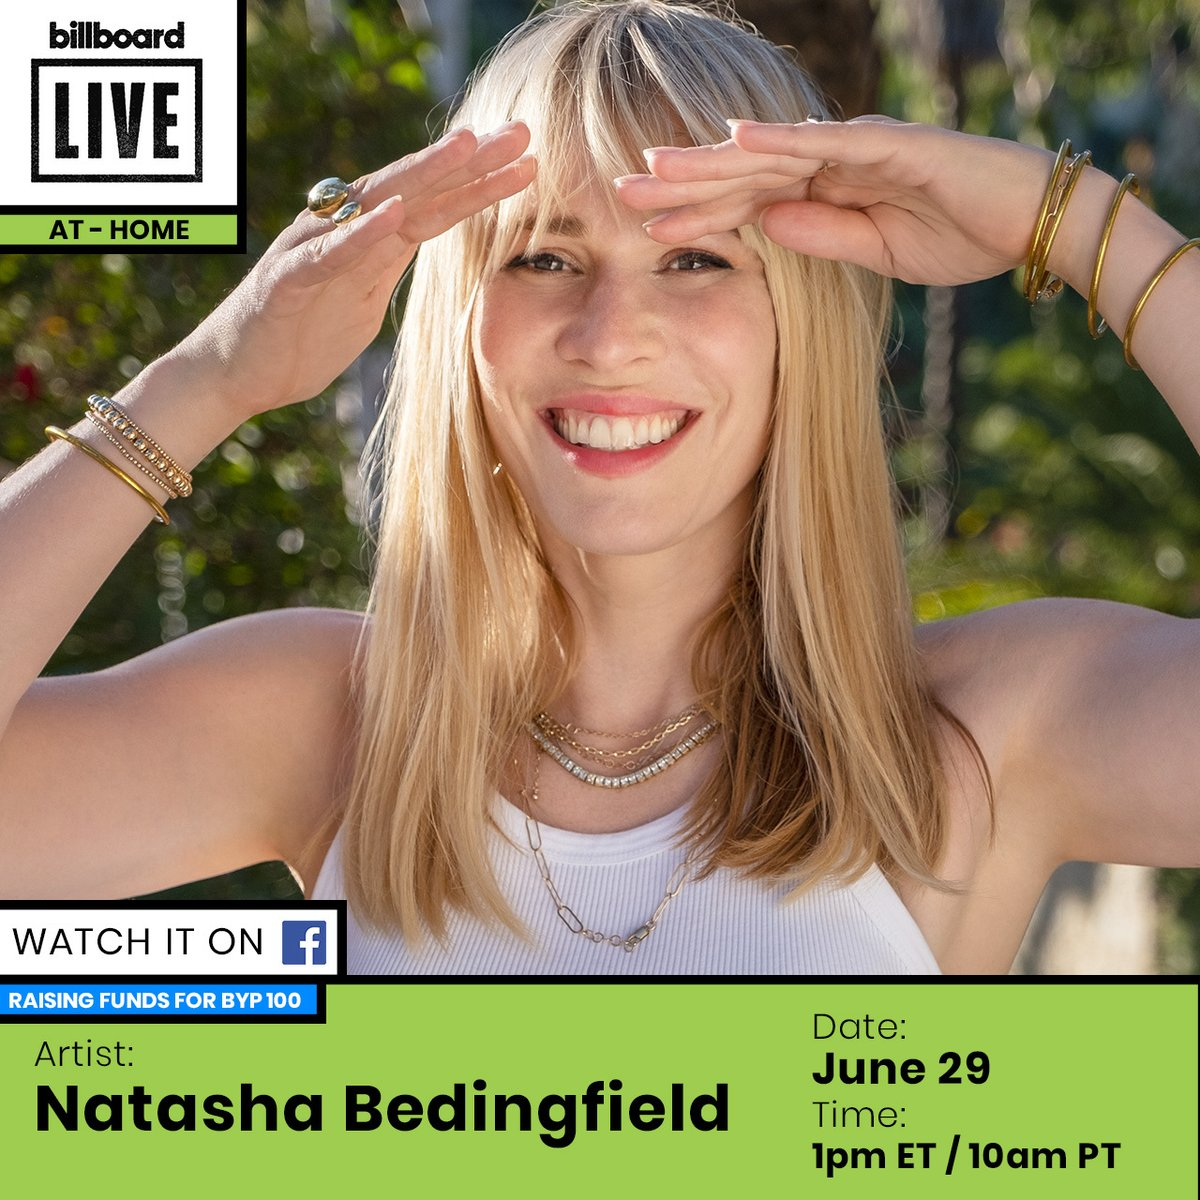 .@natashabdnfield is performing for #BillboardLive At-Home & raising money for @byp100!  Tune in to the session here: https://t.co/hDzIjKid4f https://t.co/u60oQqyoqb